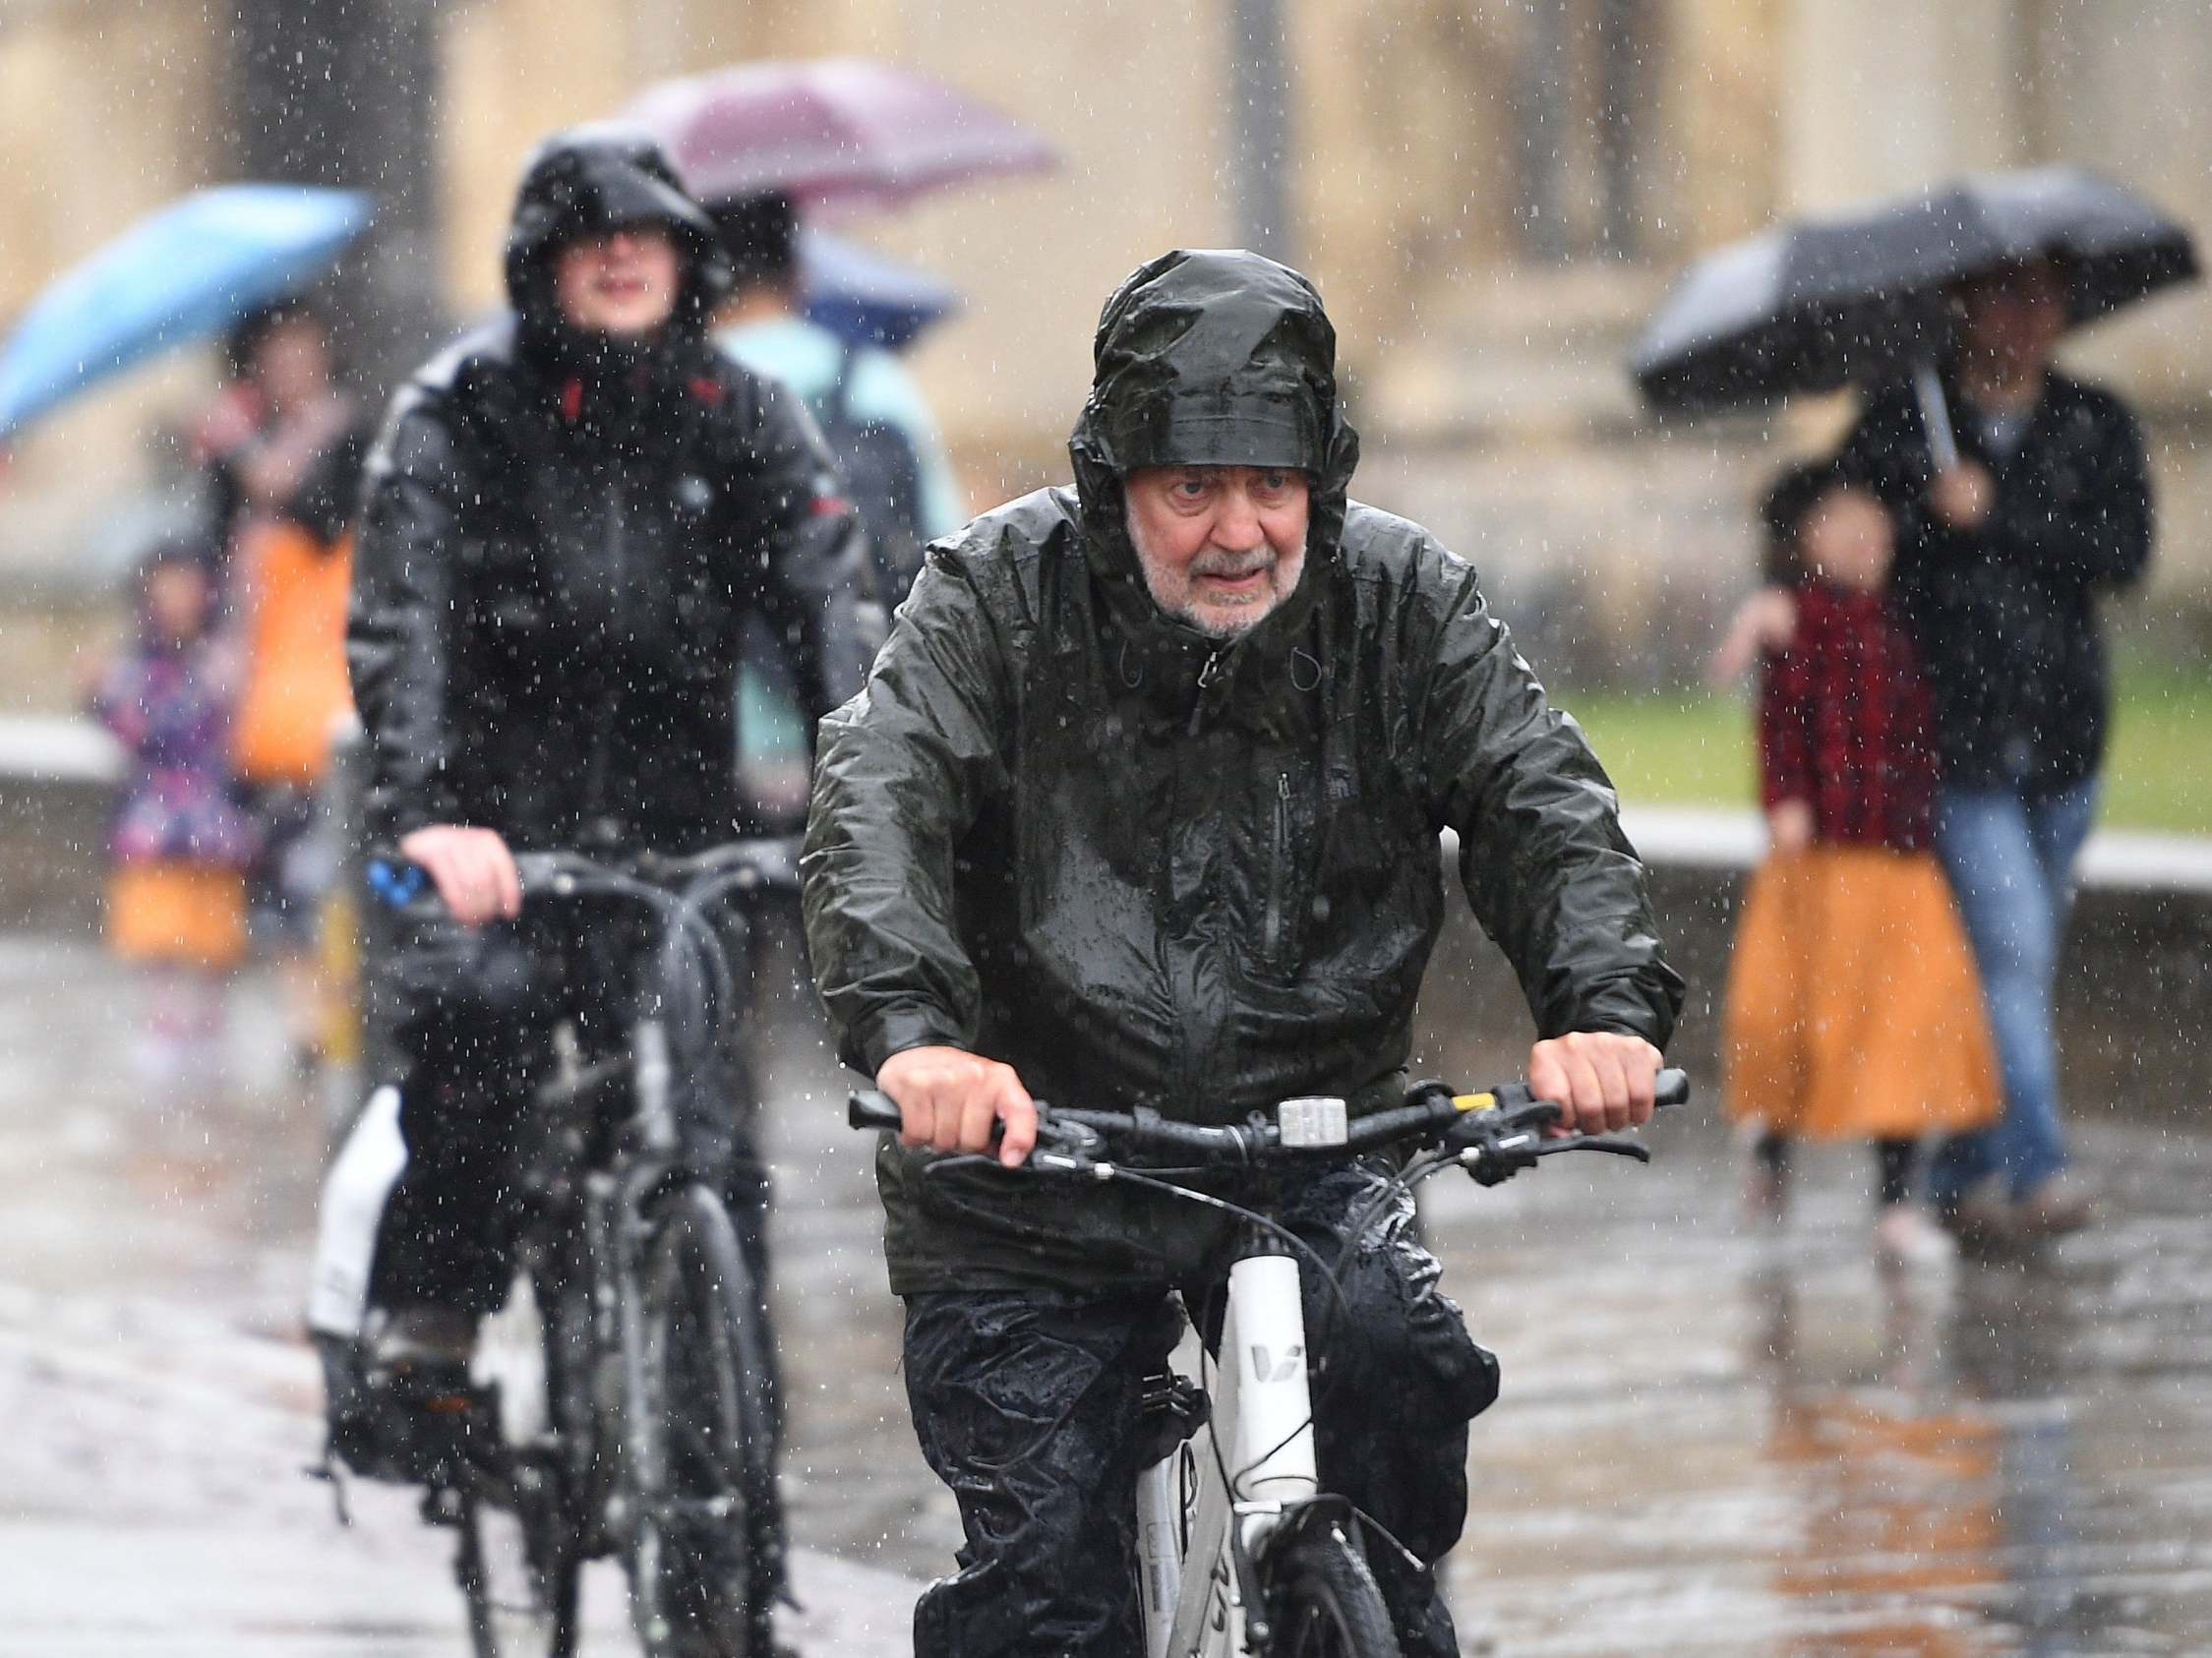 UK weather: Flood alerts issued as month's worth of rain forecast within hours